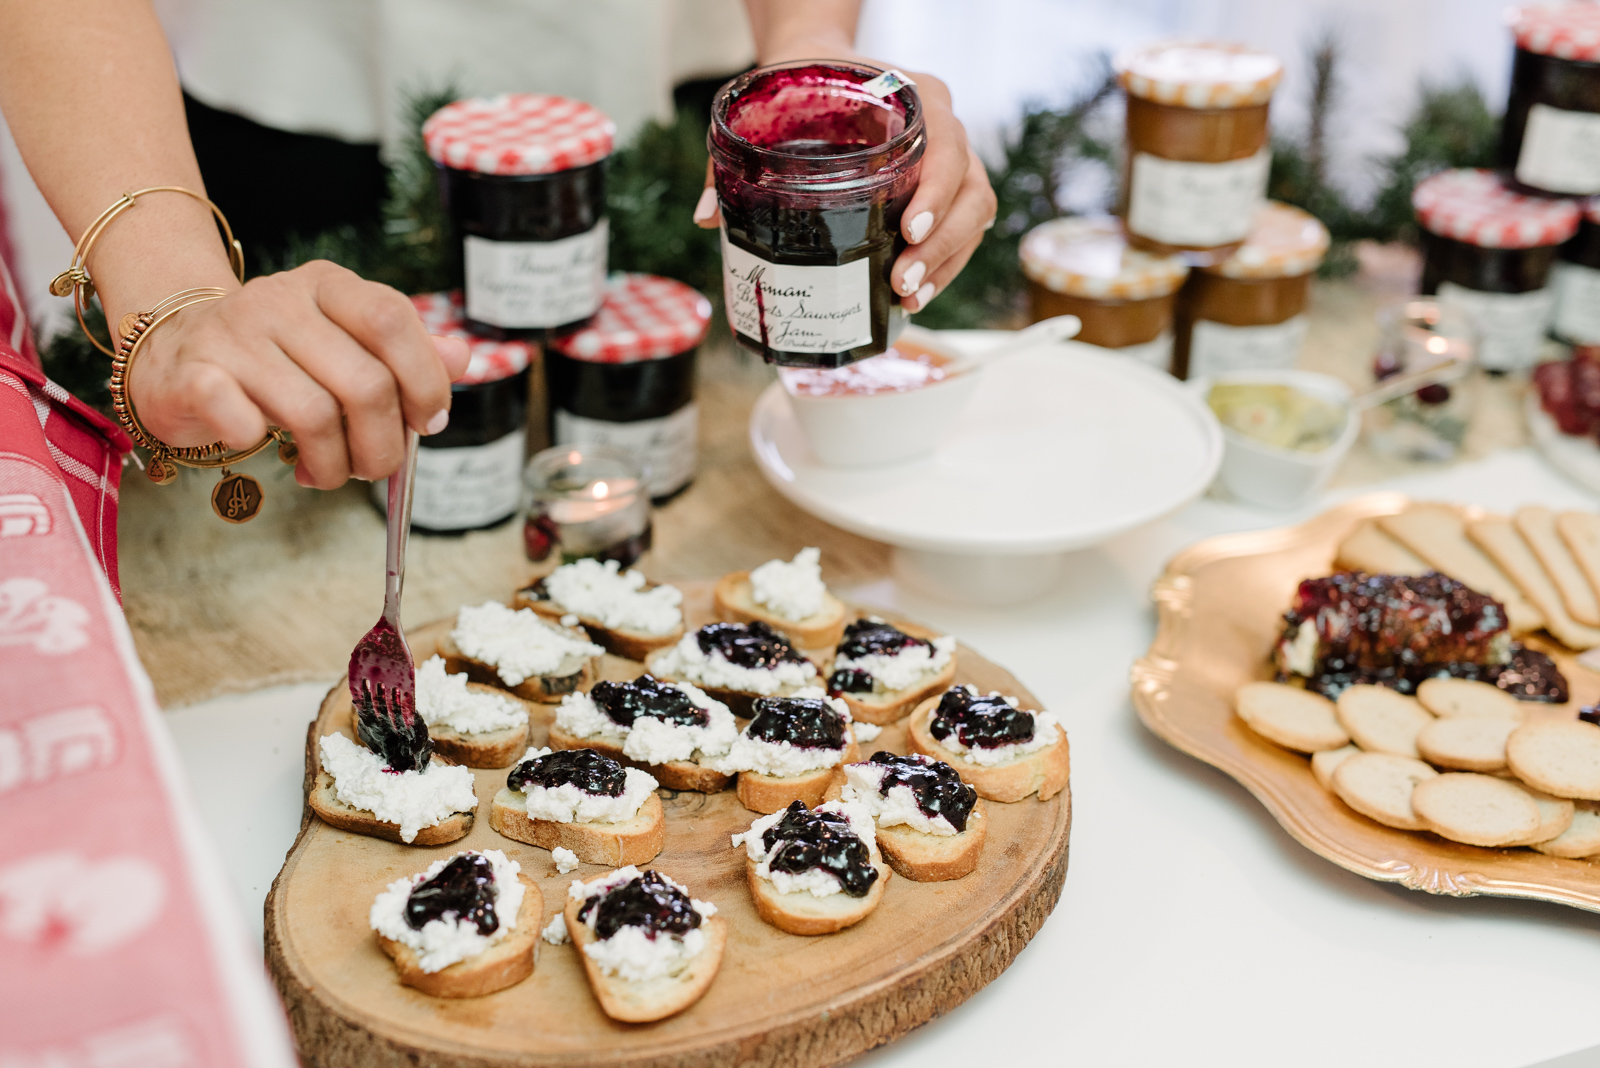 Blueberry compote with lemon ricotta crostini